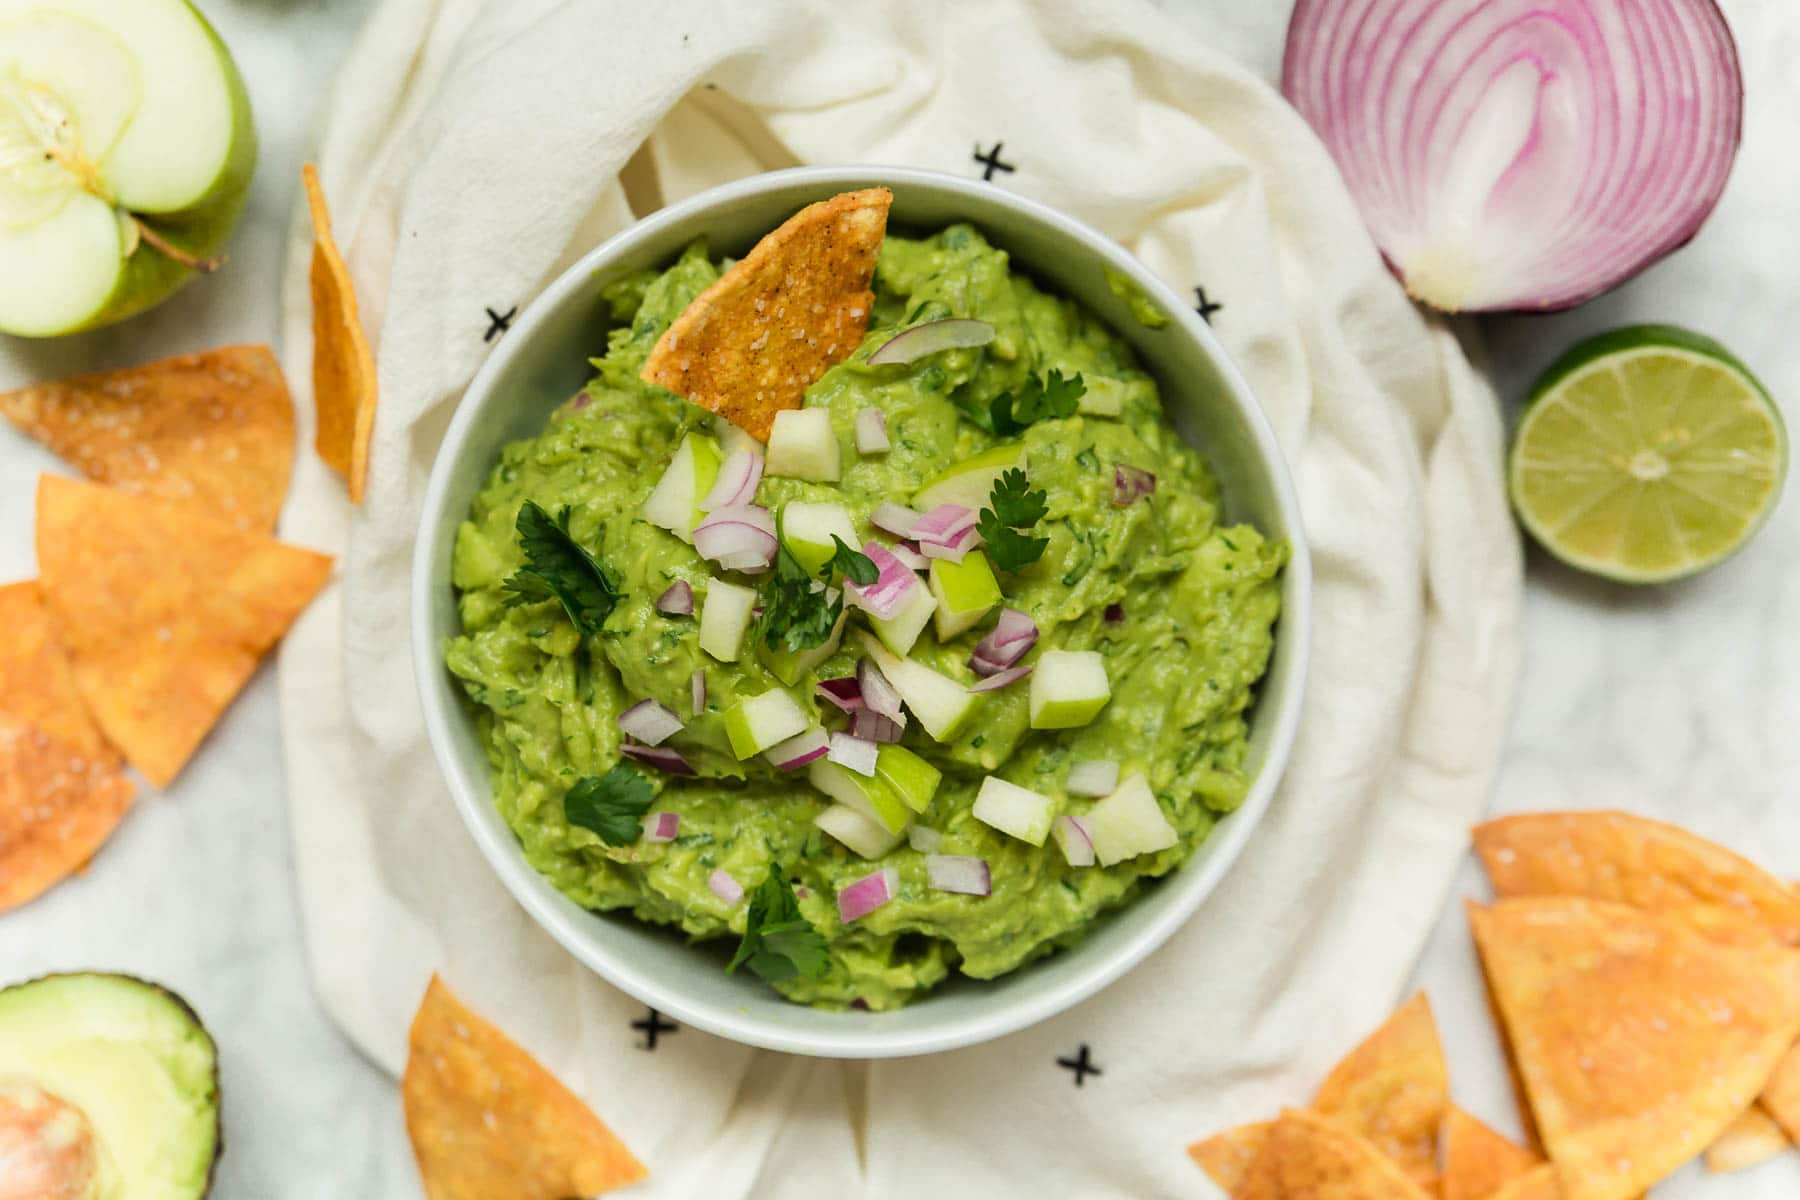 A bowl of apple guacamole with red onion, tortilla chips and lime.